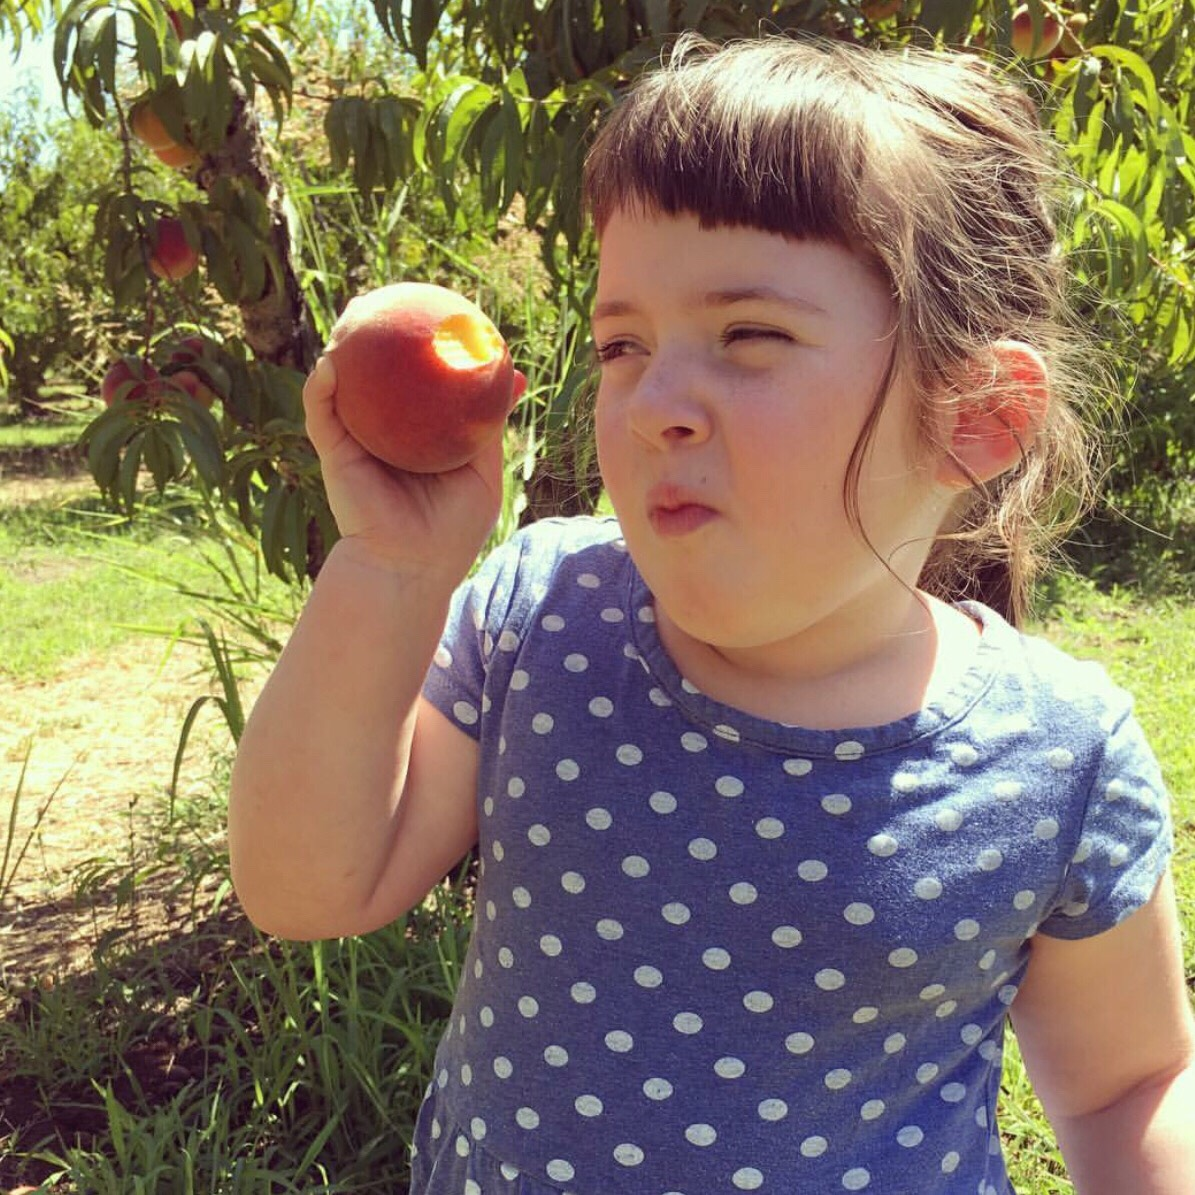 Joanna's daughter Marlowe, 5, was diagnosed with high-functioning autism in Jan. 2017. (Credit: Joanna Medeiros)